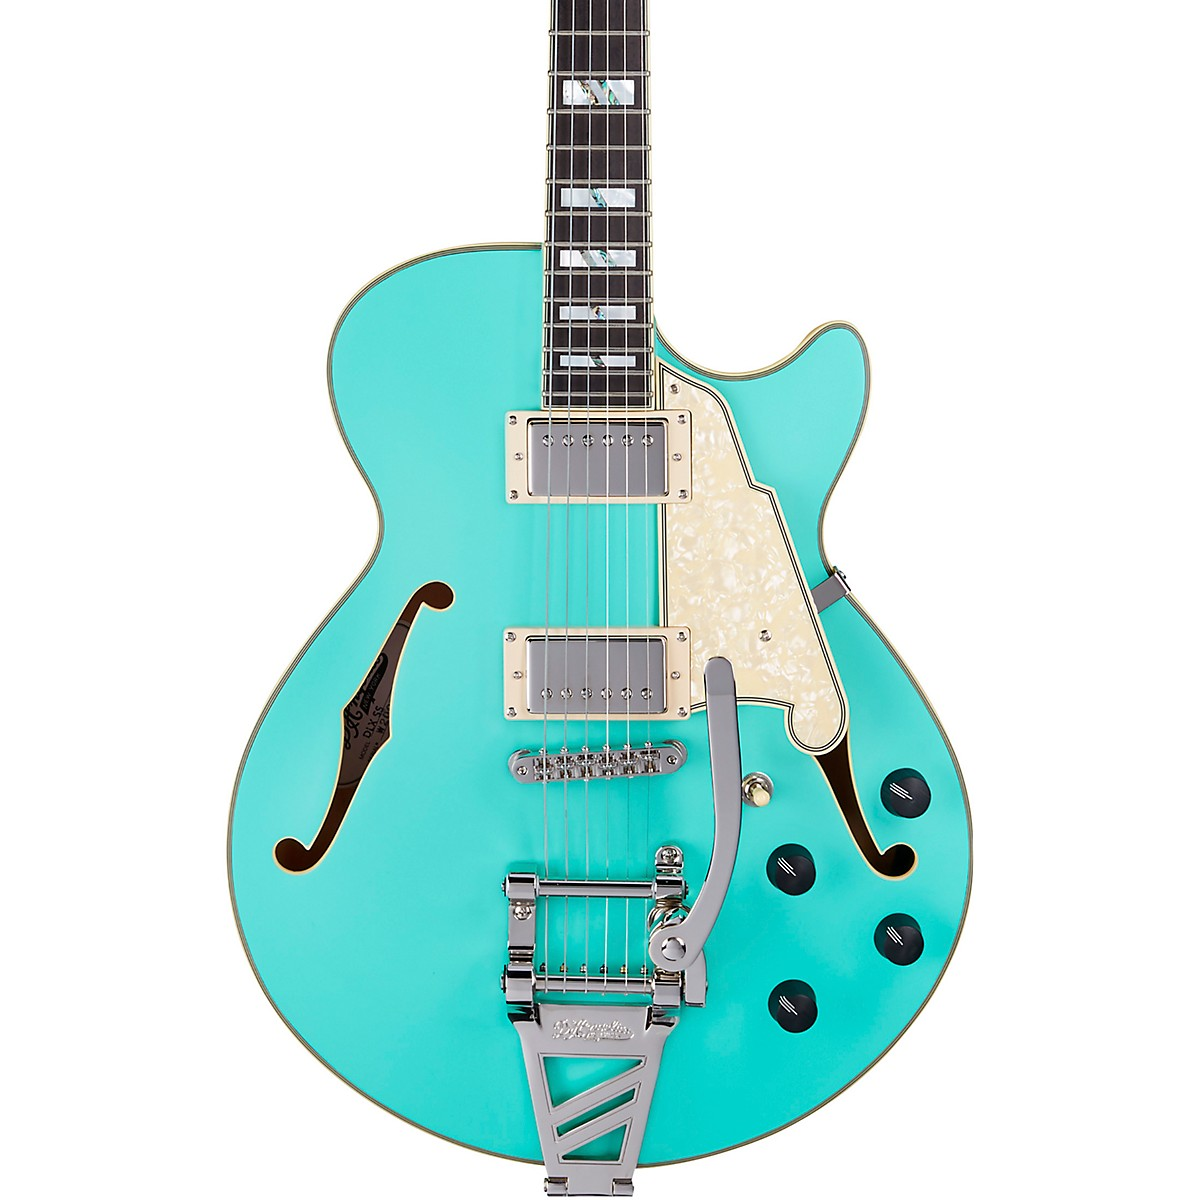 D'Angelico Deluxe SS Semi-Hollow Electric Guitar with D'Angelico Shield Tremolo